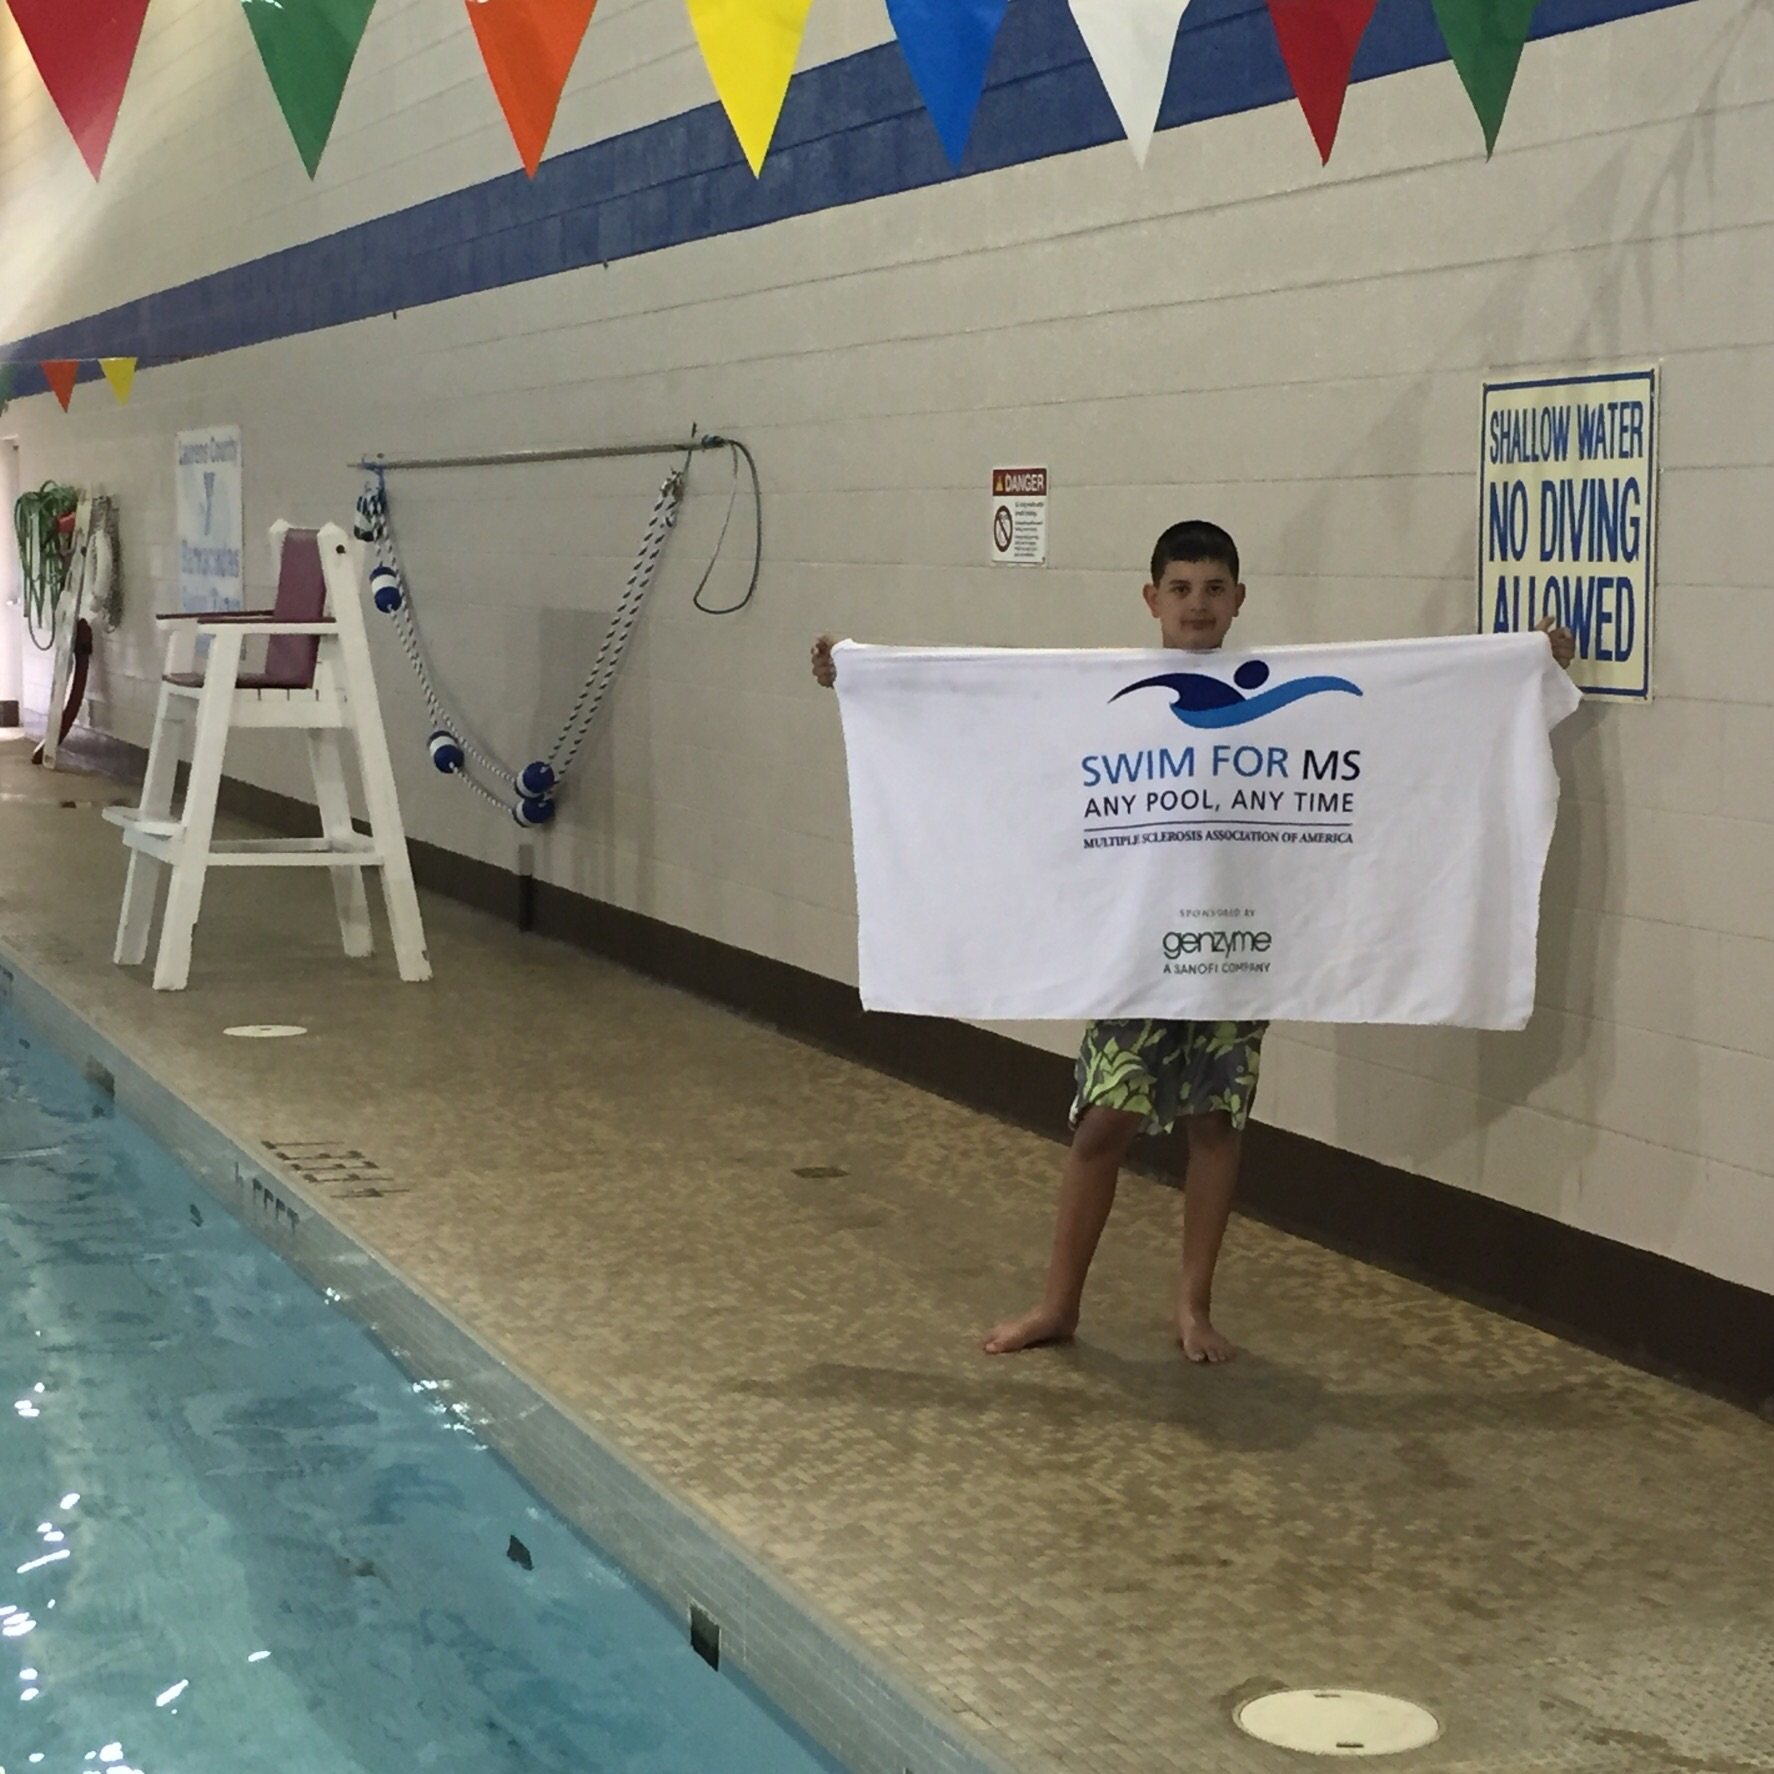 Dylan Frey - Swim for MS